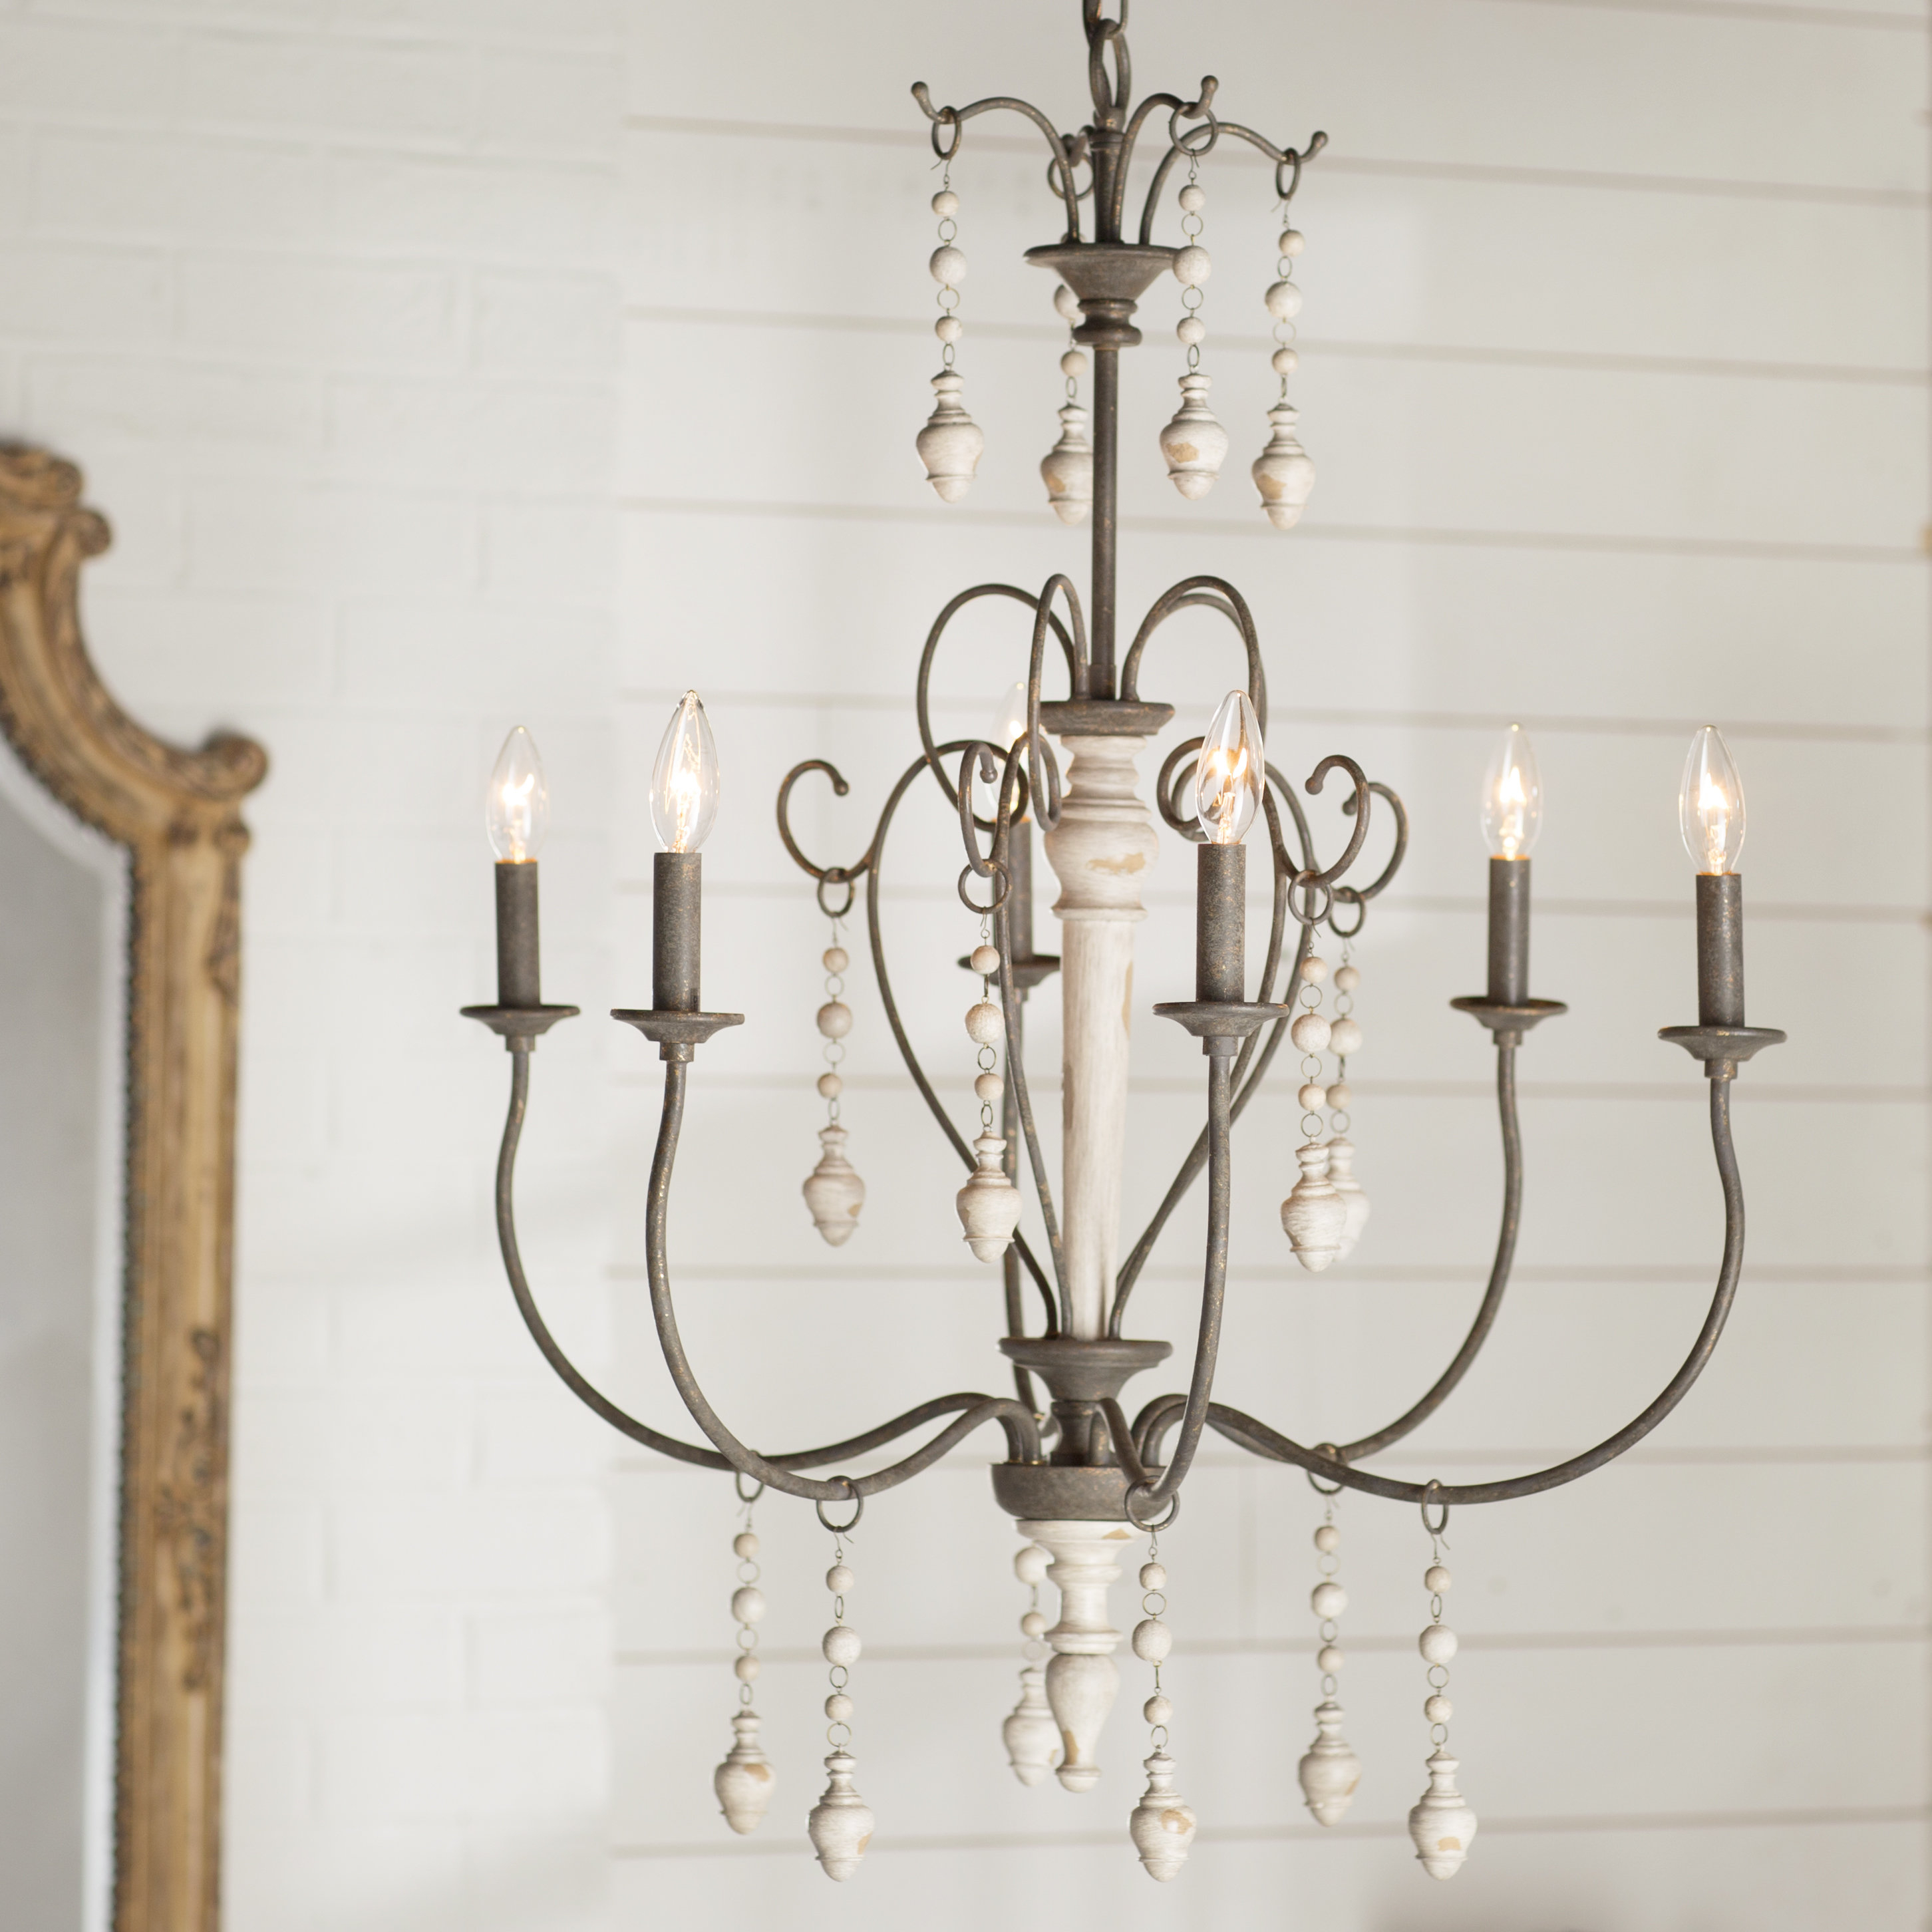 Bouchette Traditional 6 Light Candle Style Chandelier Regarding Shaylee 6 Light Candle Style Chandeliers (View 2 of 30)